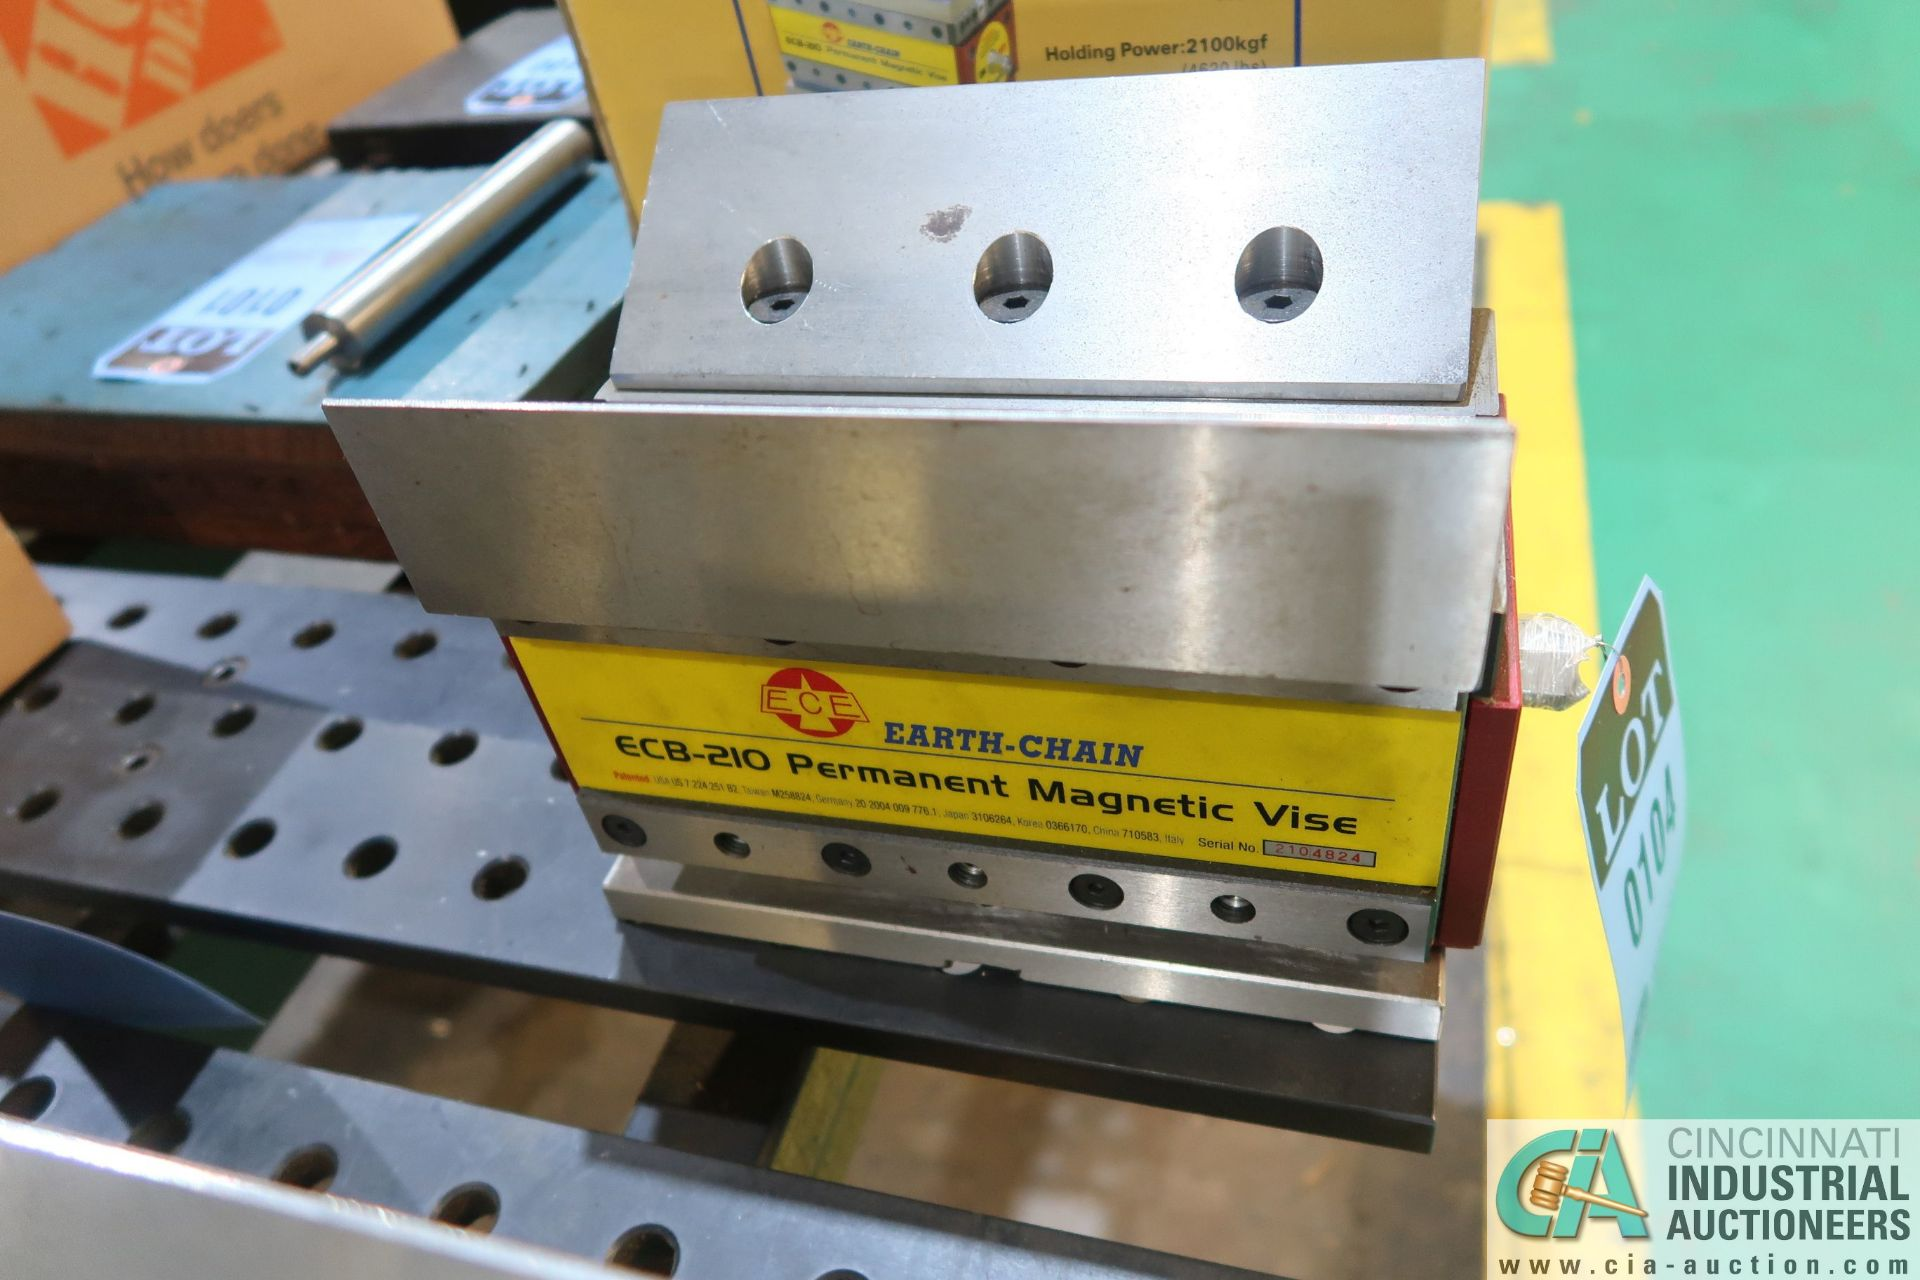 EARTH-CHAIN MODEL ECB-210 PERMANENT MAGNETIC VISE; S/N 2104824, WITH INDUCTION ANGLED SOFT BLOCKS